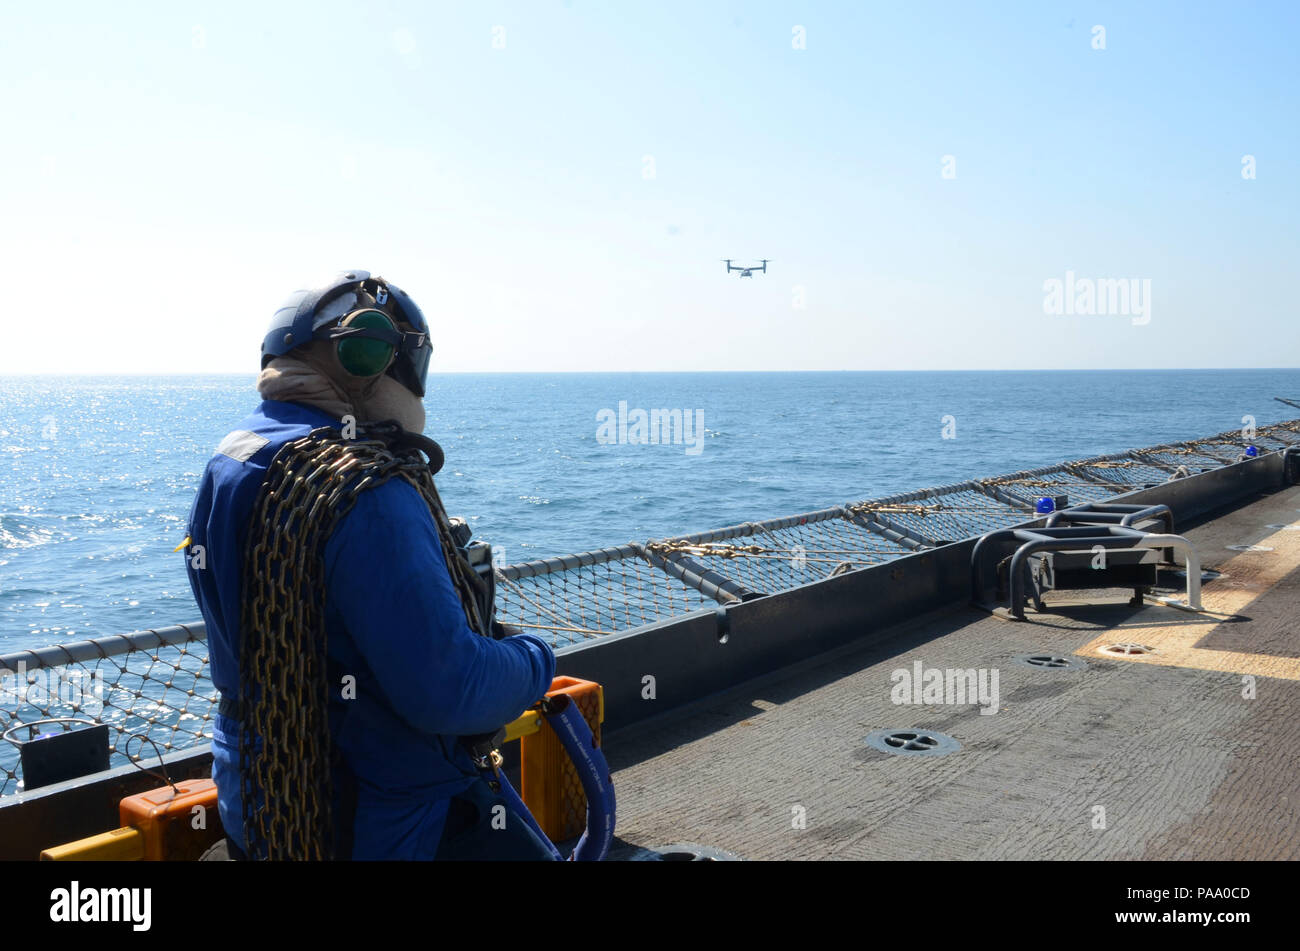 160311-N-WJ640-030 GWANGYANG, South Korea (March 11, 2016)—Civilian Mariner Adrian Shuman prepares for an incoming aircraft on board dry cargo/ammunition ship USNS Sacagawea (T-AKE 2), March 11. The Sacagewea was one of three MPF ships that offloaded her cargo in support of Exercise Ssang Yong 16, under the Exercise Freedom Banner 16 directive. (U.S. Navy photo by Mass Communication Specialist 3rd Class Madailein Abbott/Released) Stock Photo